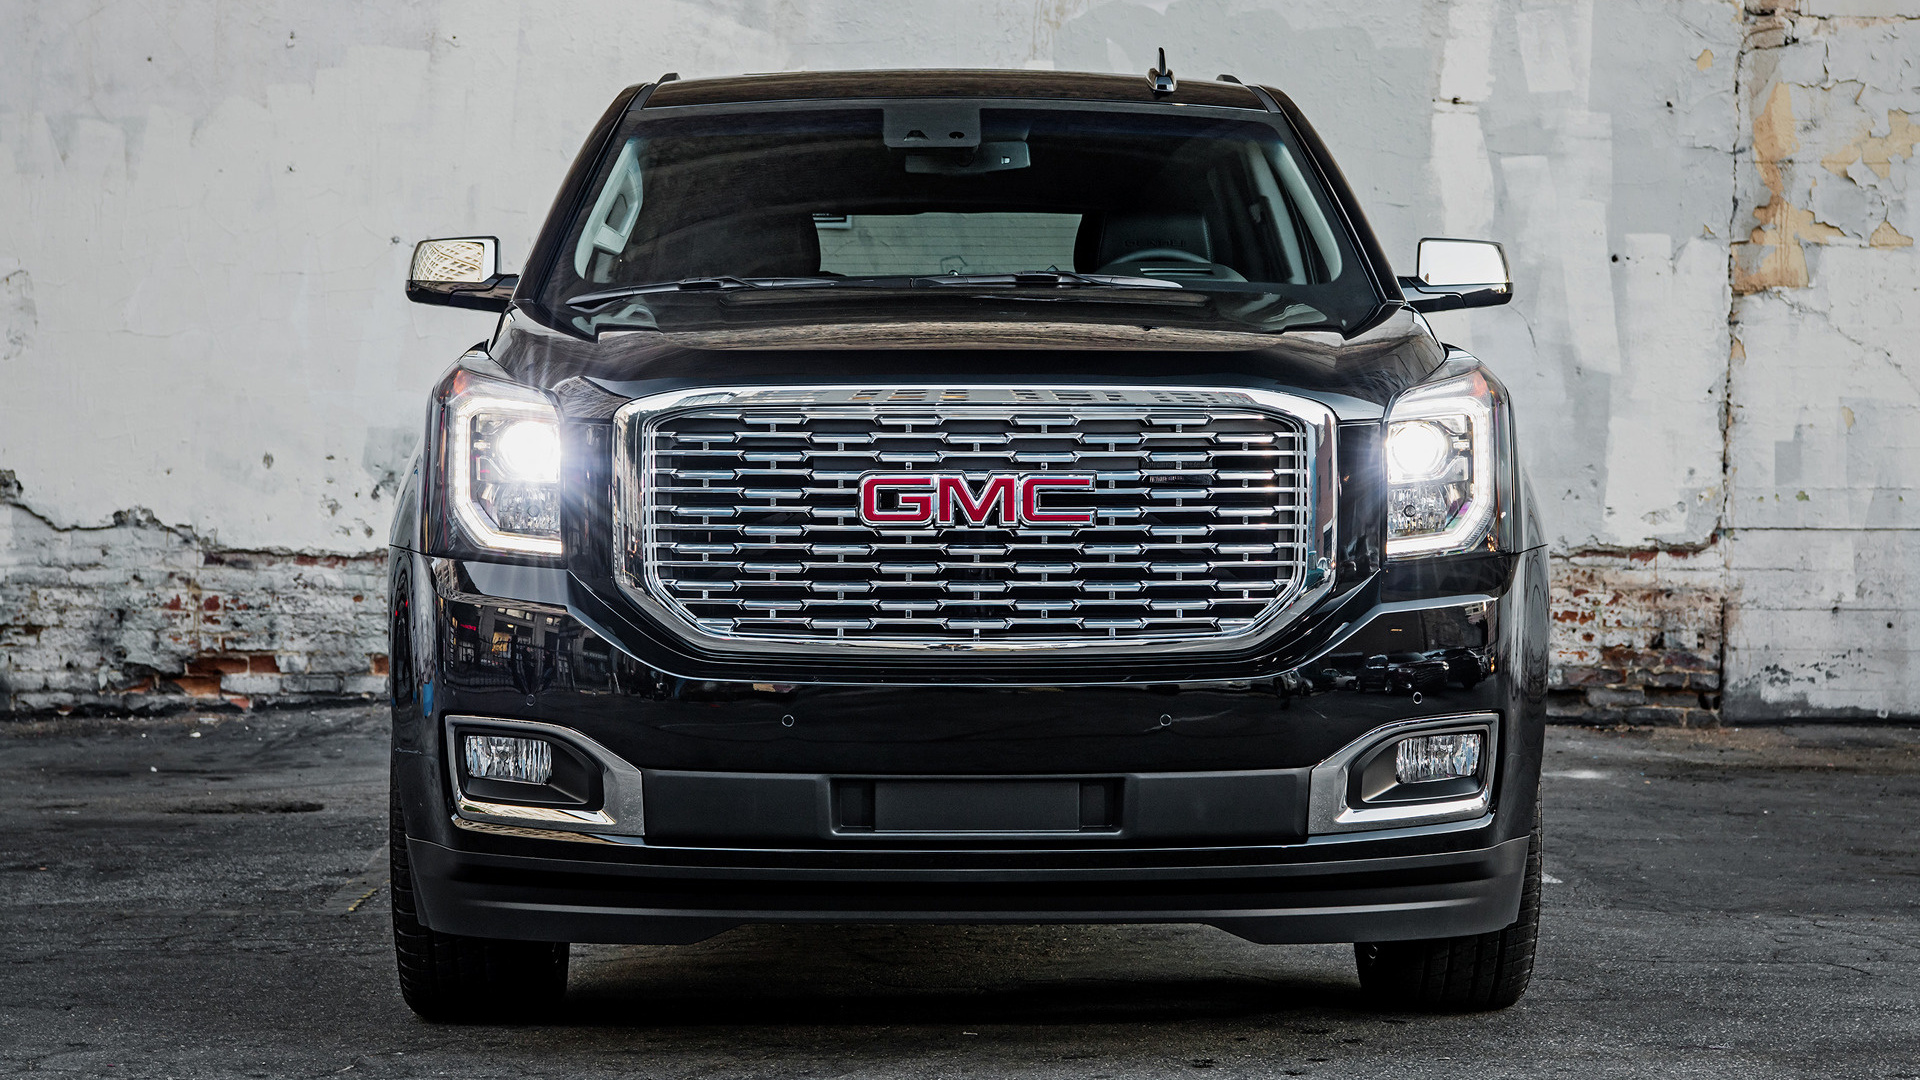 2018 GMC Yukon Denali Ultimate Black Edition - Wallpapers ...